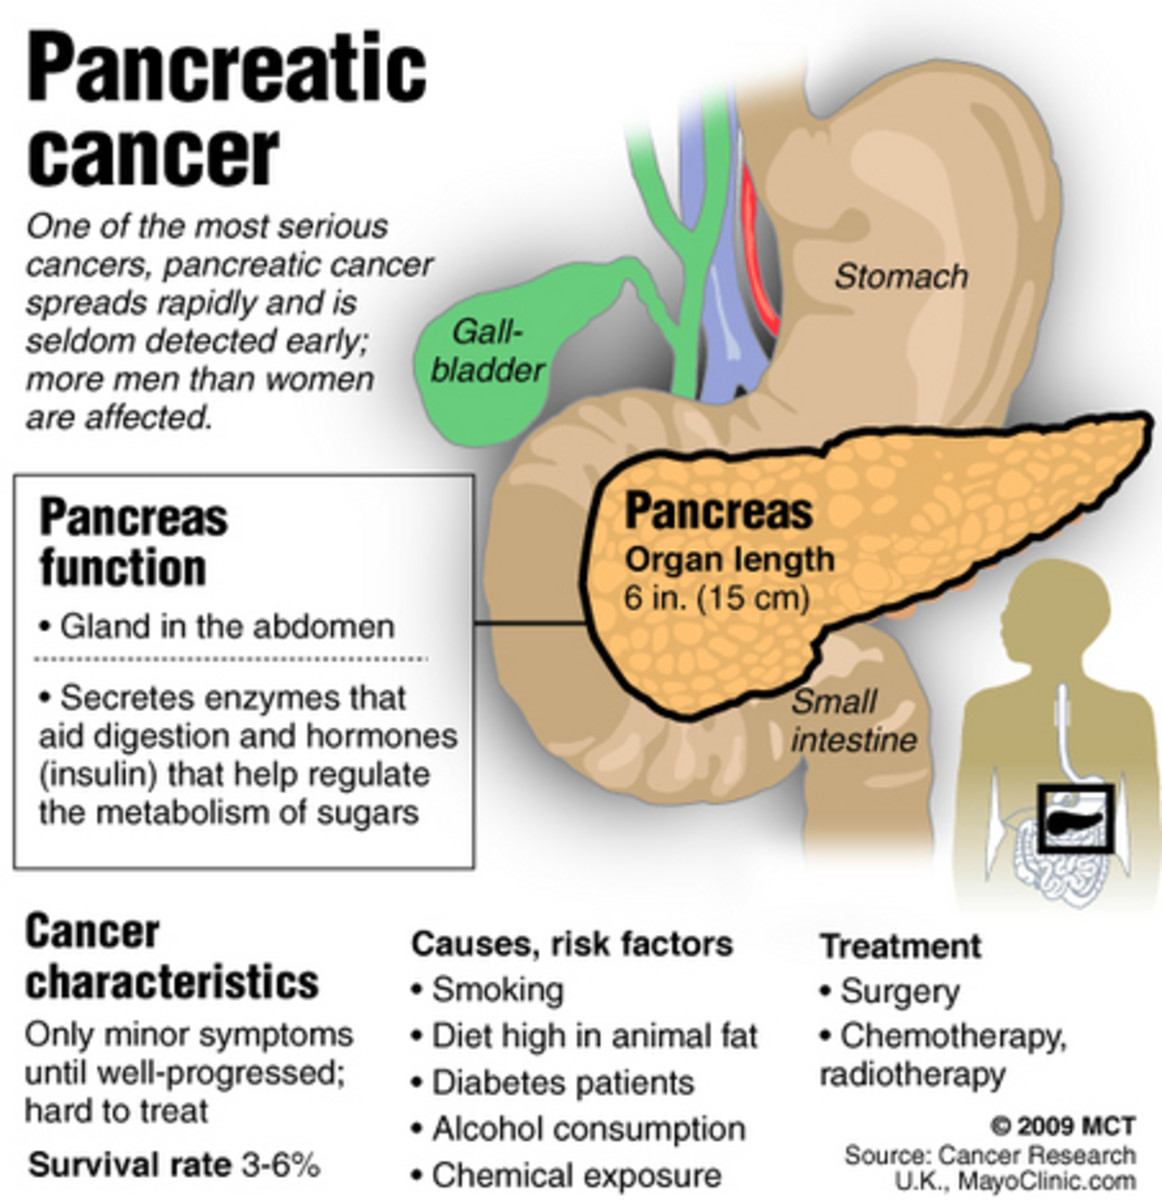 Explaining pancreatic cancer